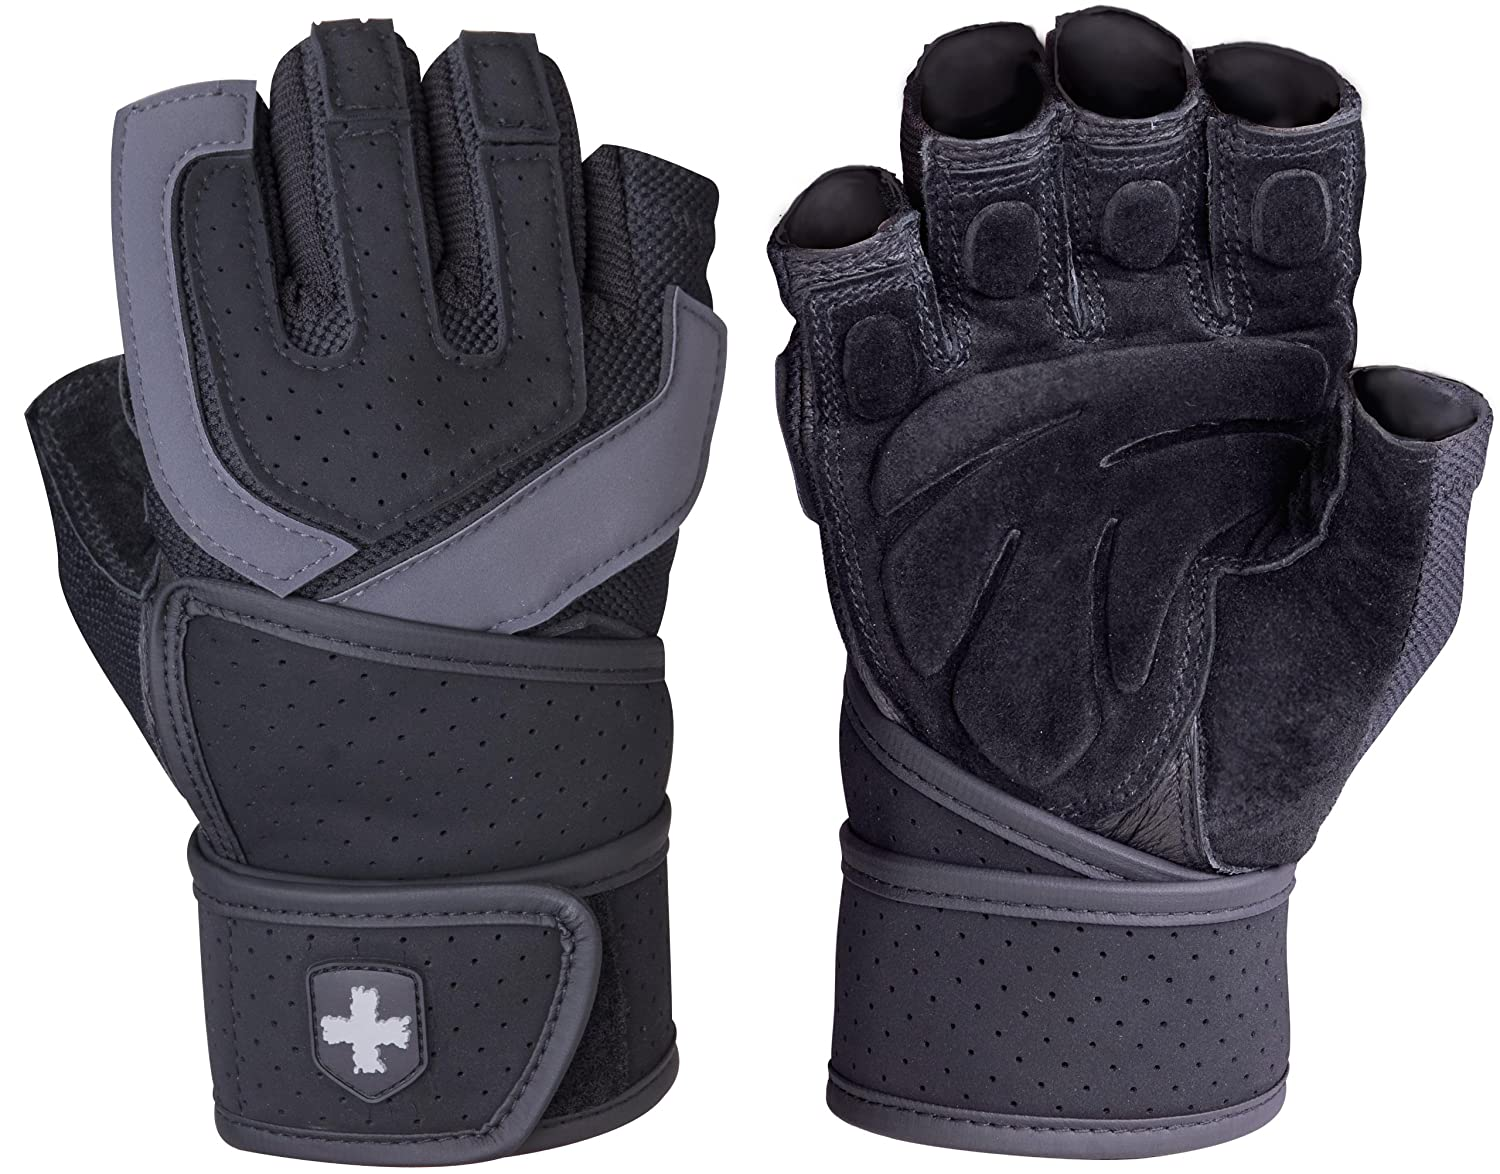 Harbinger 1250 Training Grip WristWrap Glove,Black/Grey hame a5 3g wi fi ieee802 11b g n 150mbps router hotspot black